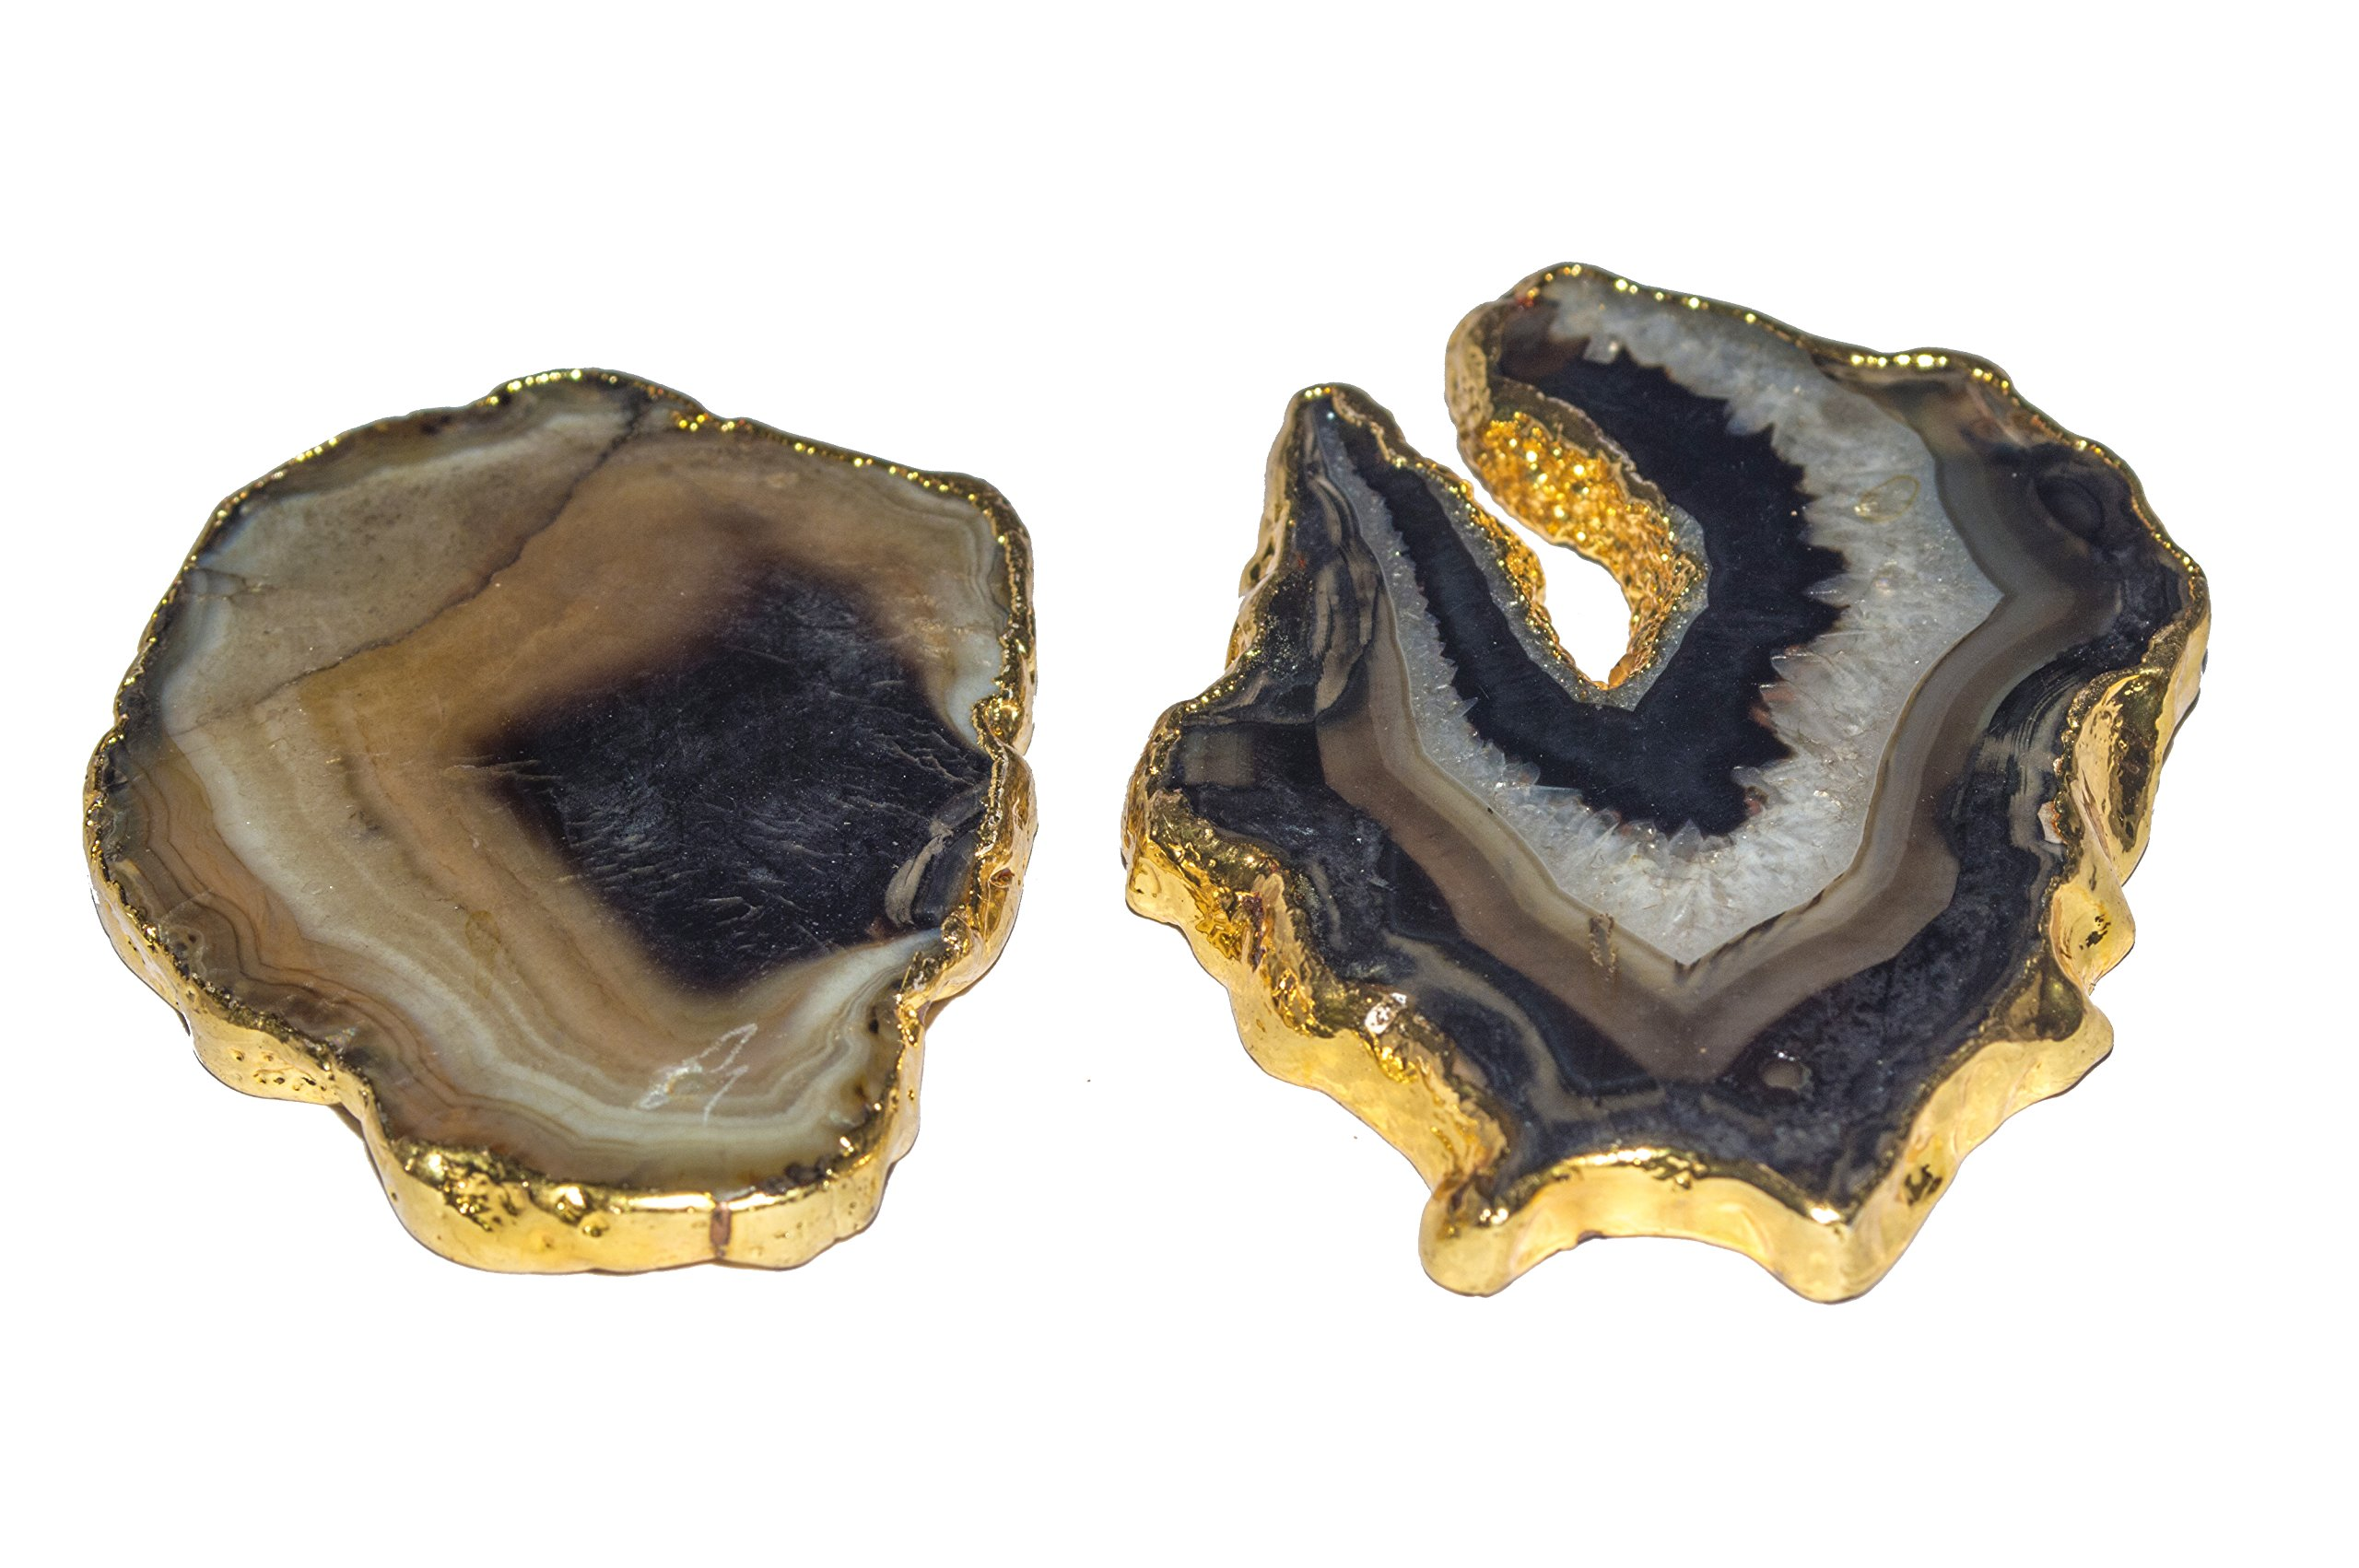 Crocon Natural Agate Slice Dye Colorful Coaster electroplated for Cup Mat Stone Cup Holder Table Geode Home Decoration (Black & Gold, 1.5-2 inch)